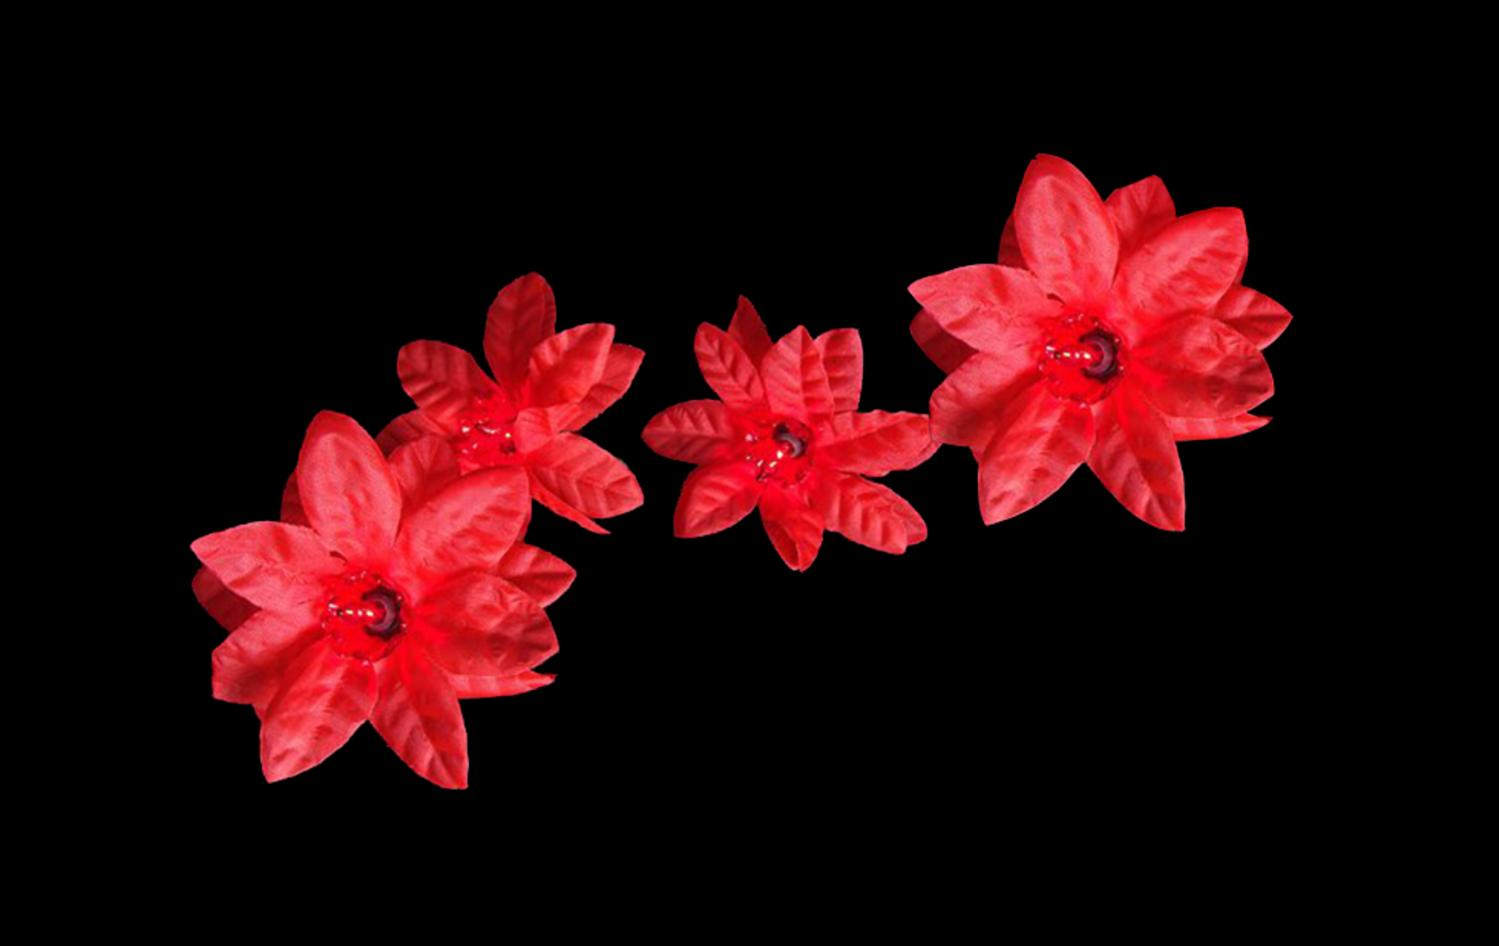 Set of 20 Red Poinsettia Holiday Flower Christmas Lights - Green ...